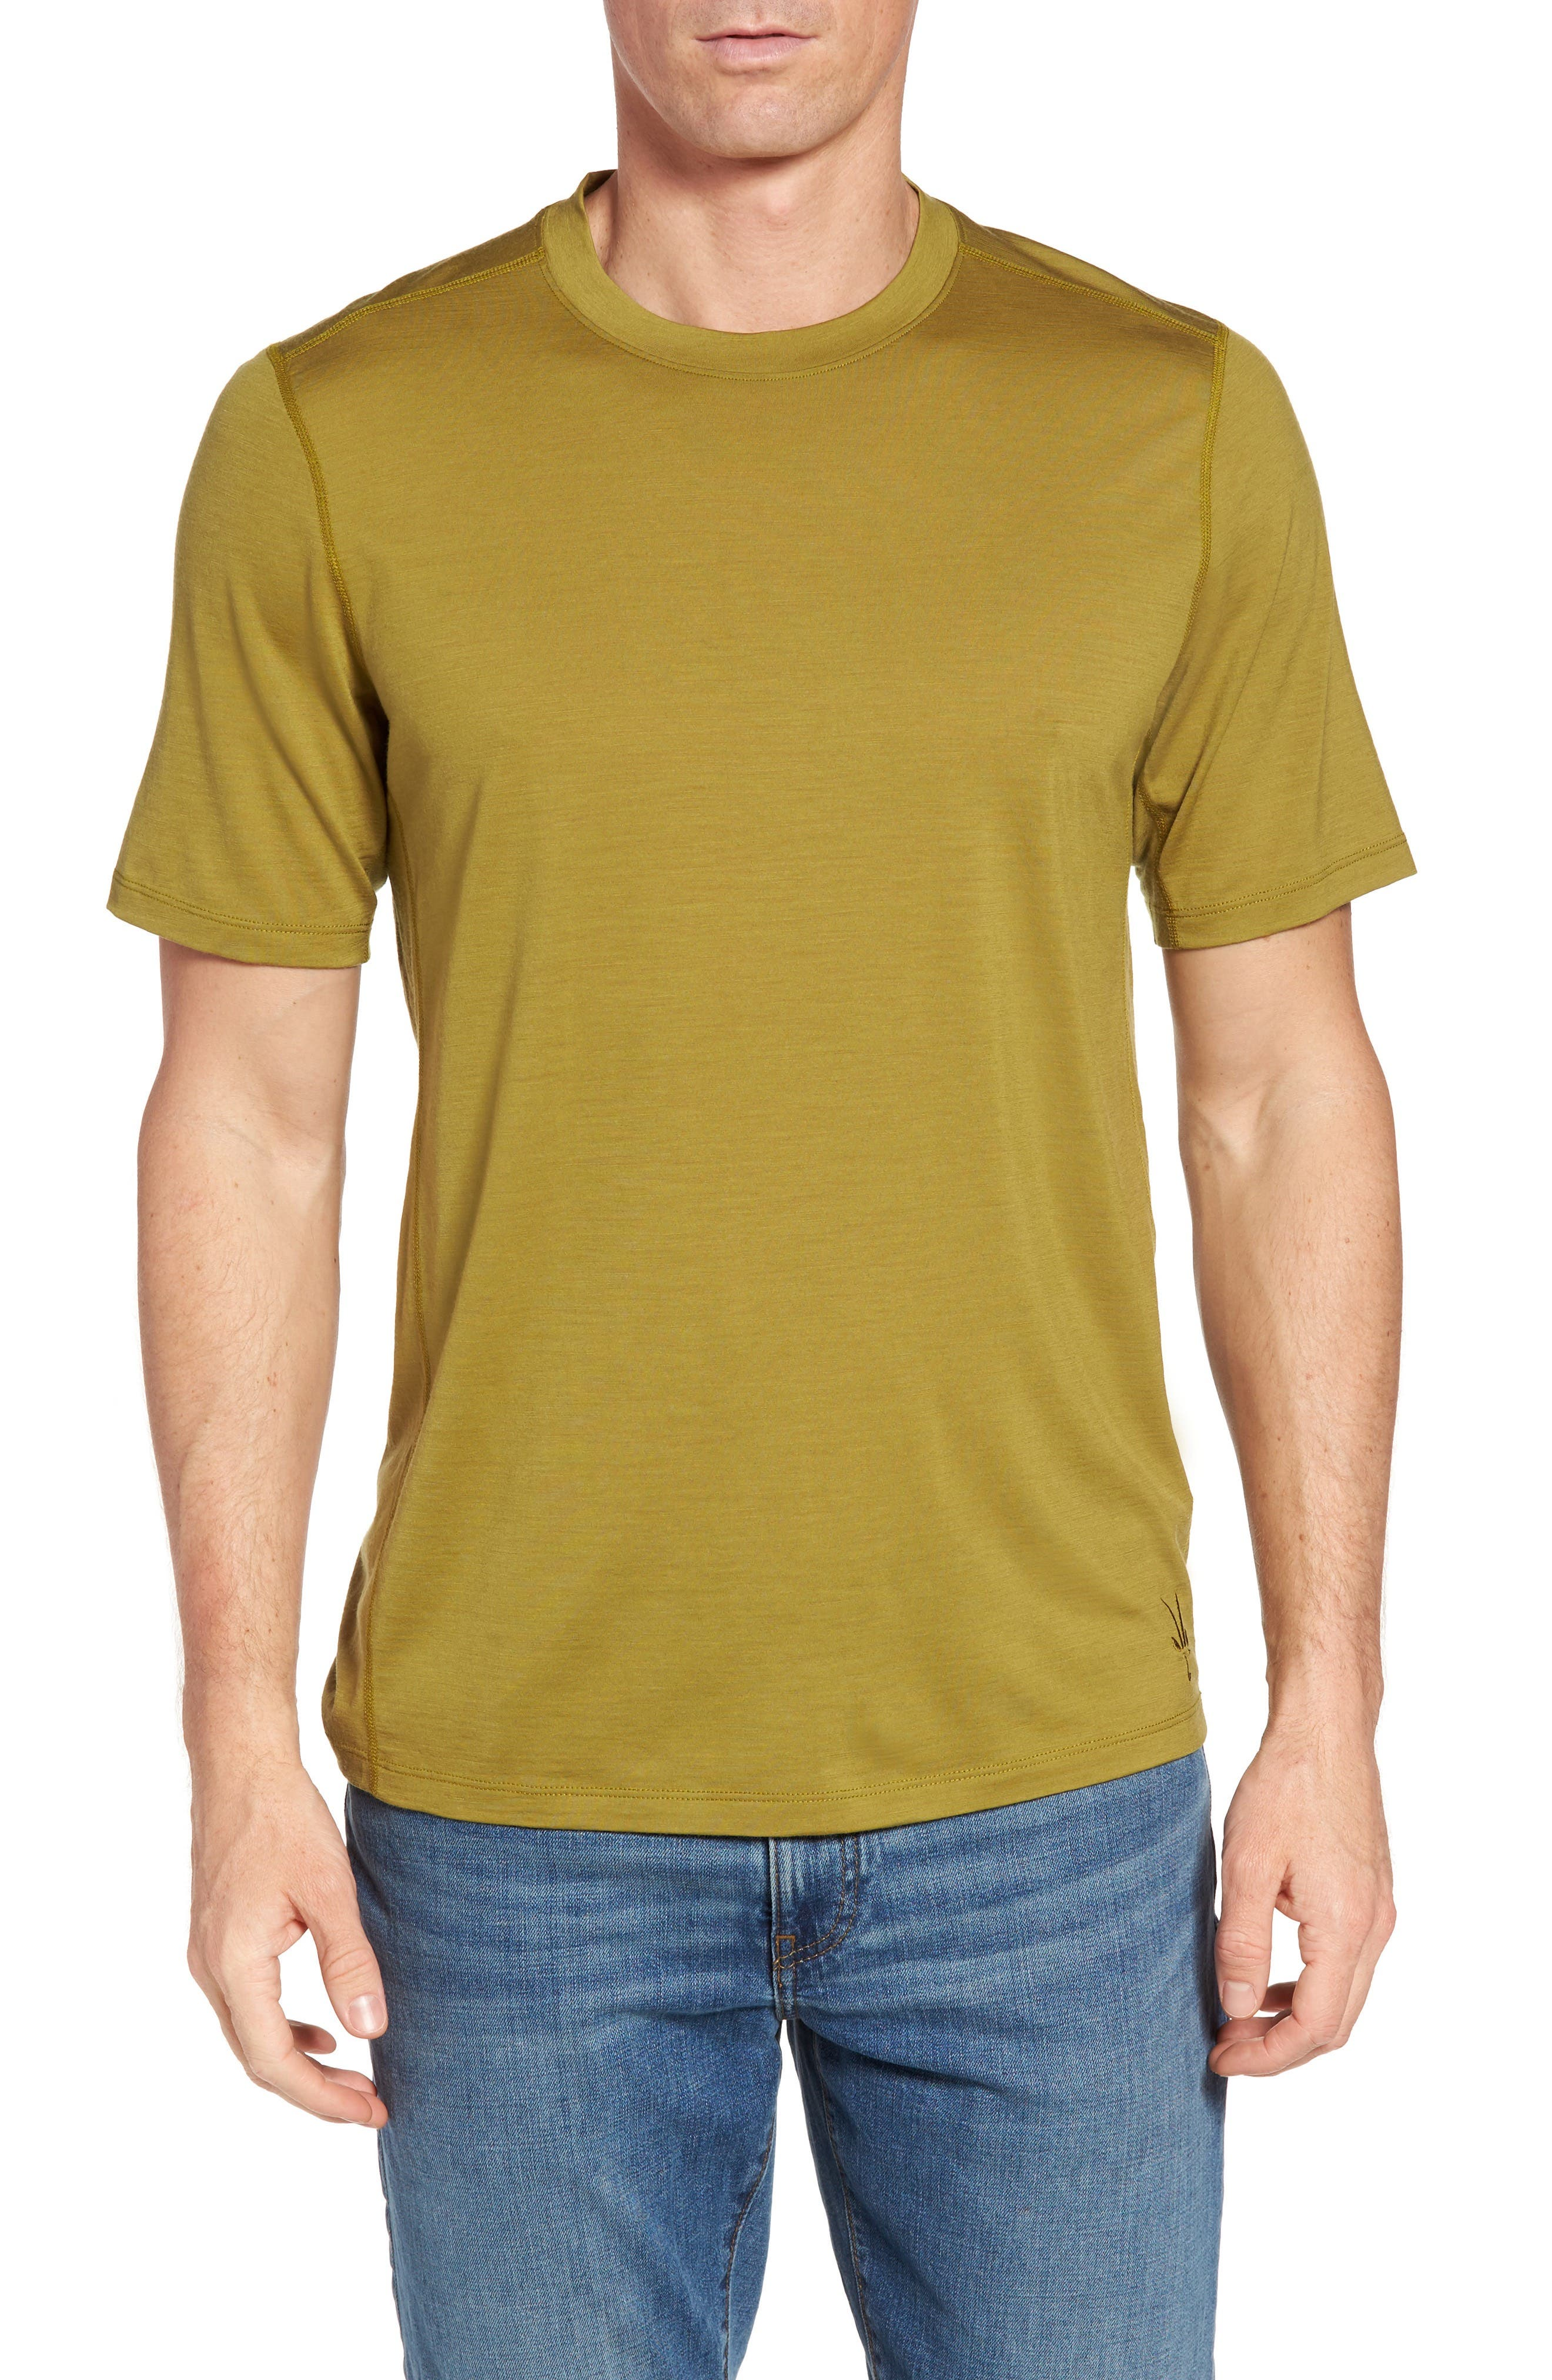 Alternate Image 1 Selected - ibex 'All Day Weightless Wool Blend' T-Shirt